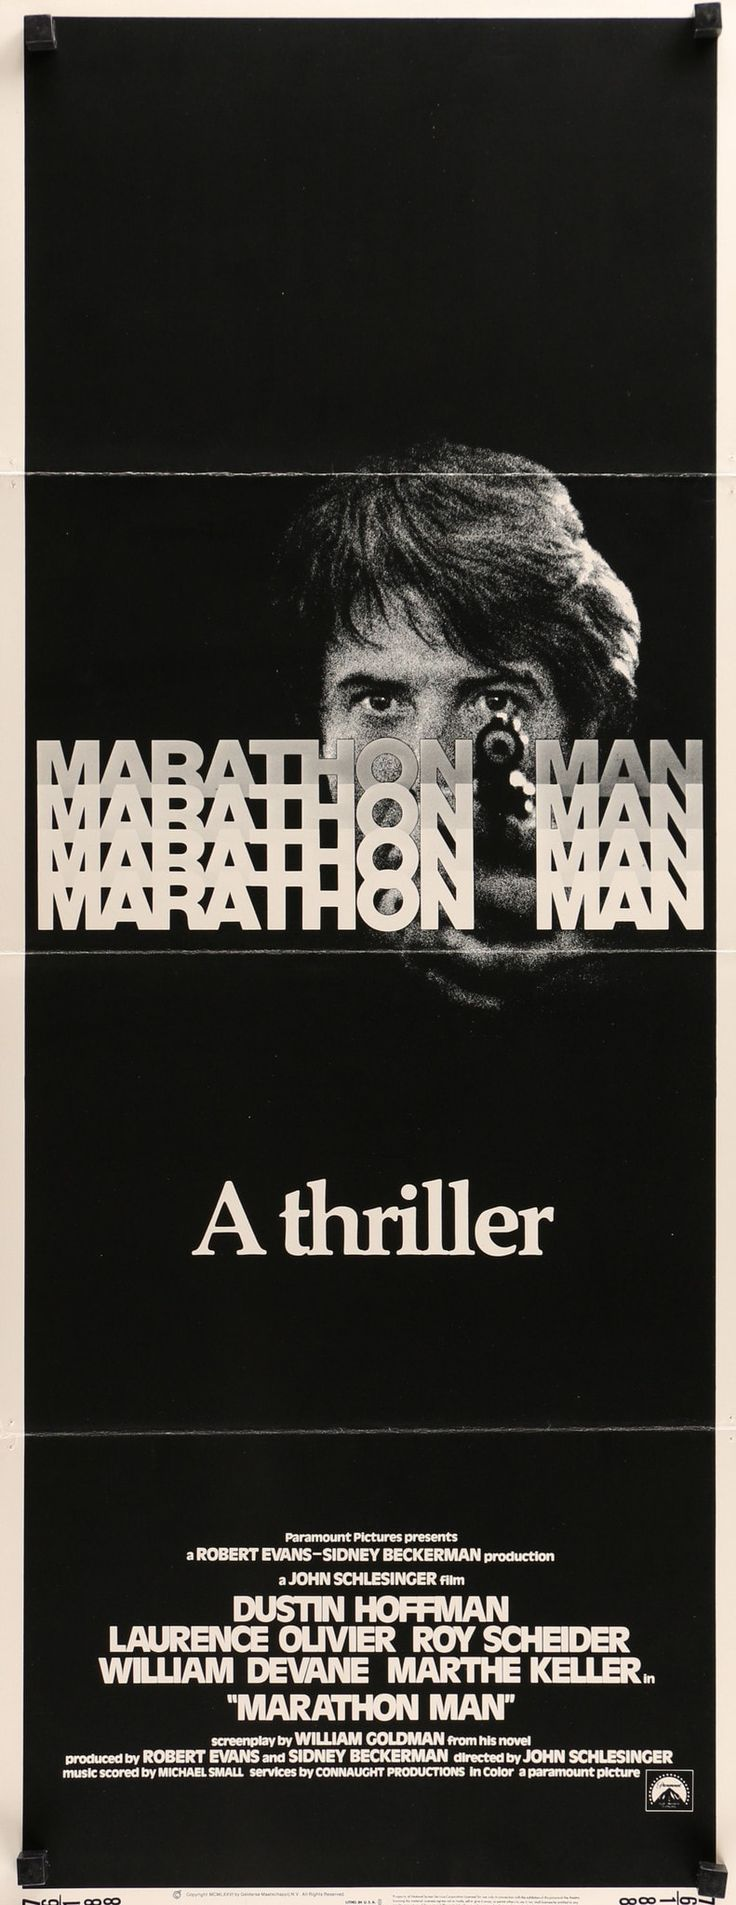 "Film: Marathon Man (1976) Year poster printed: 1976 Country: USA Size: 14""x 36"" This is a rare, vintage insert movie poster from 1976 for Marathon Man starring Dustin Hoffman, Laurence Olivier, Roy Sc"